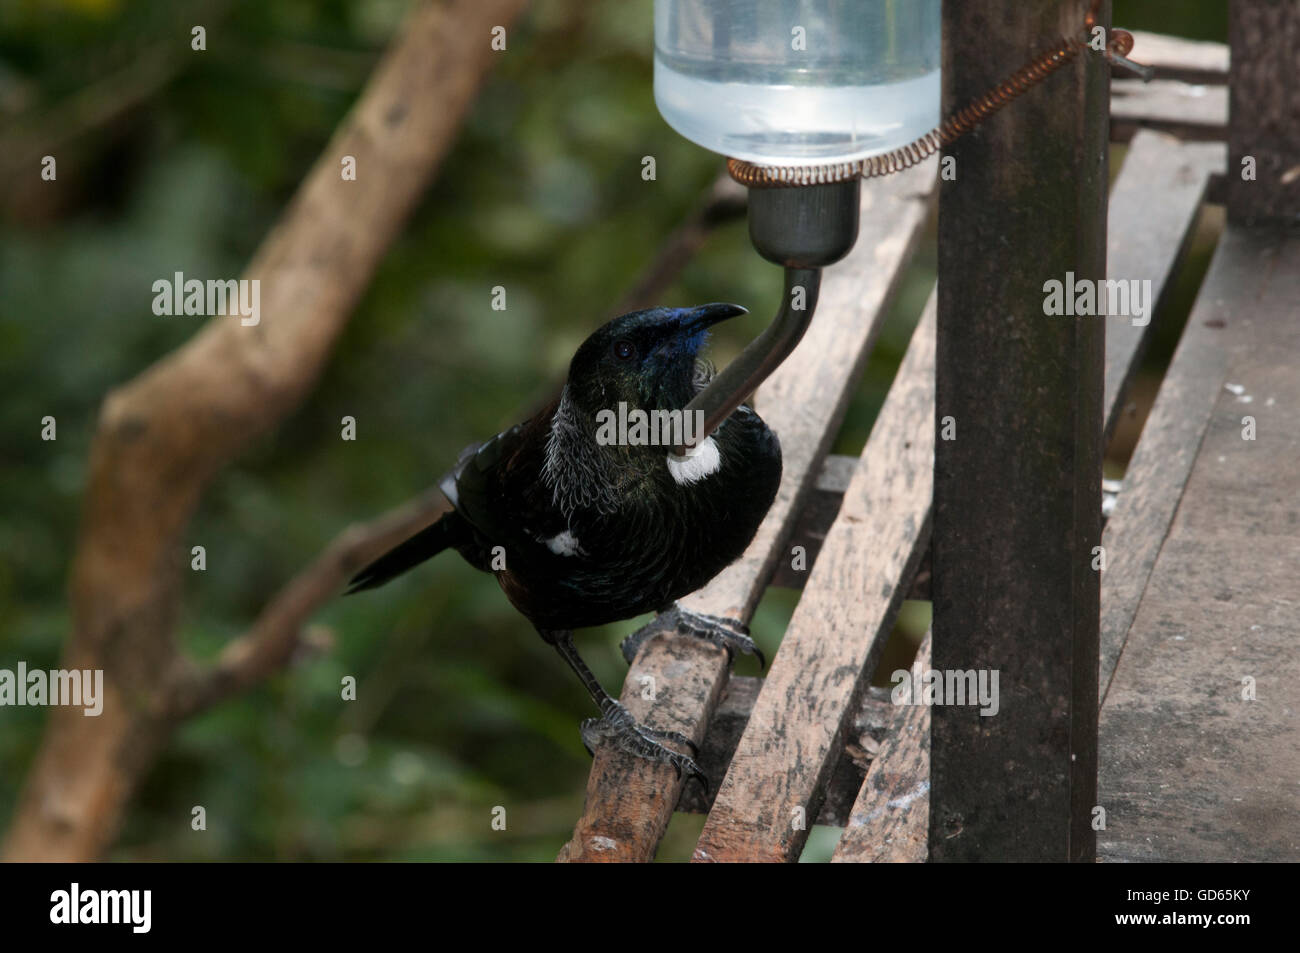 A Tui bird is taking a drink from a feeder in Orokonui Ecosanctuary near Dunedin on the South Island of New Zealand. Stock Photo